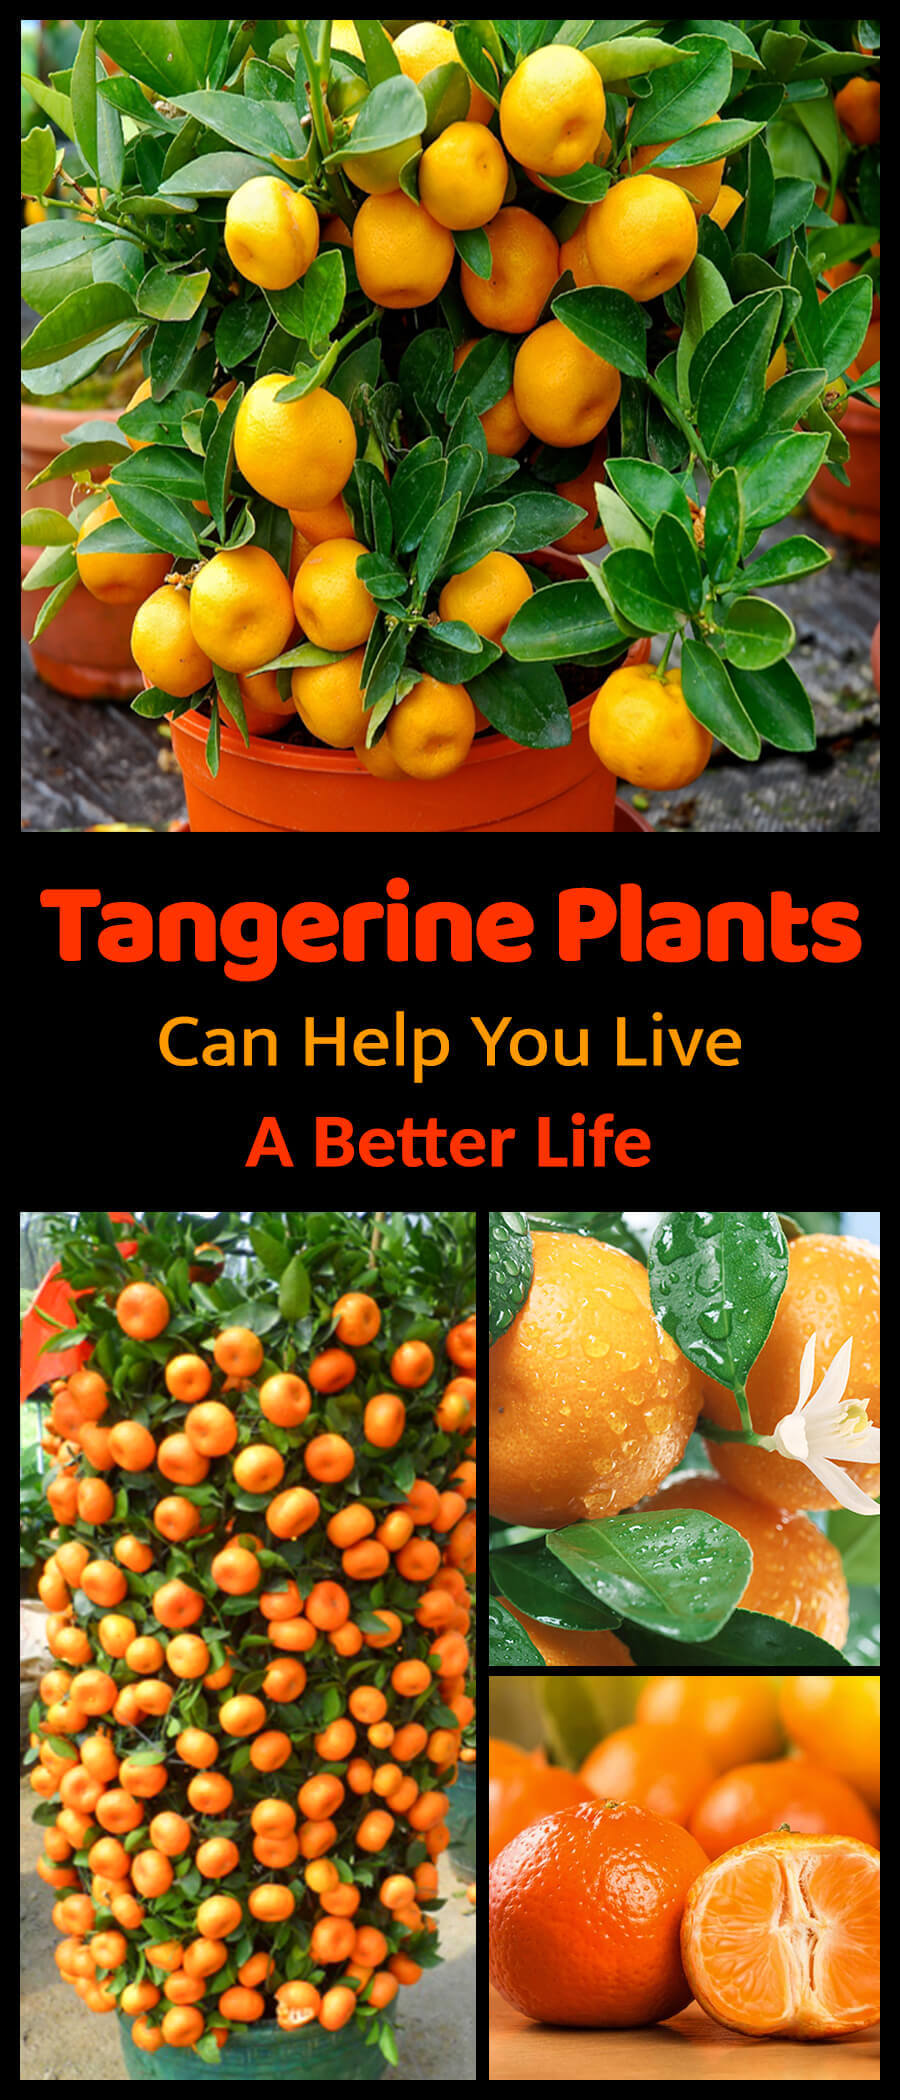 How Tangerine Plants Can Help You Live a Better Life